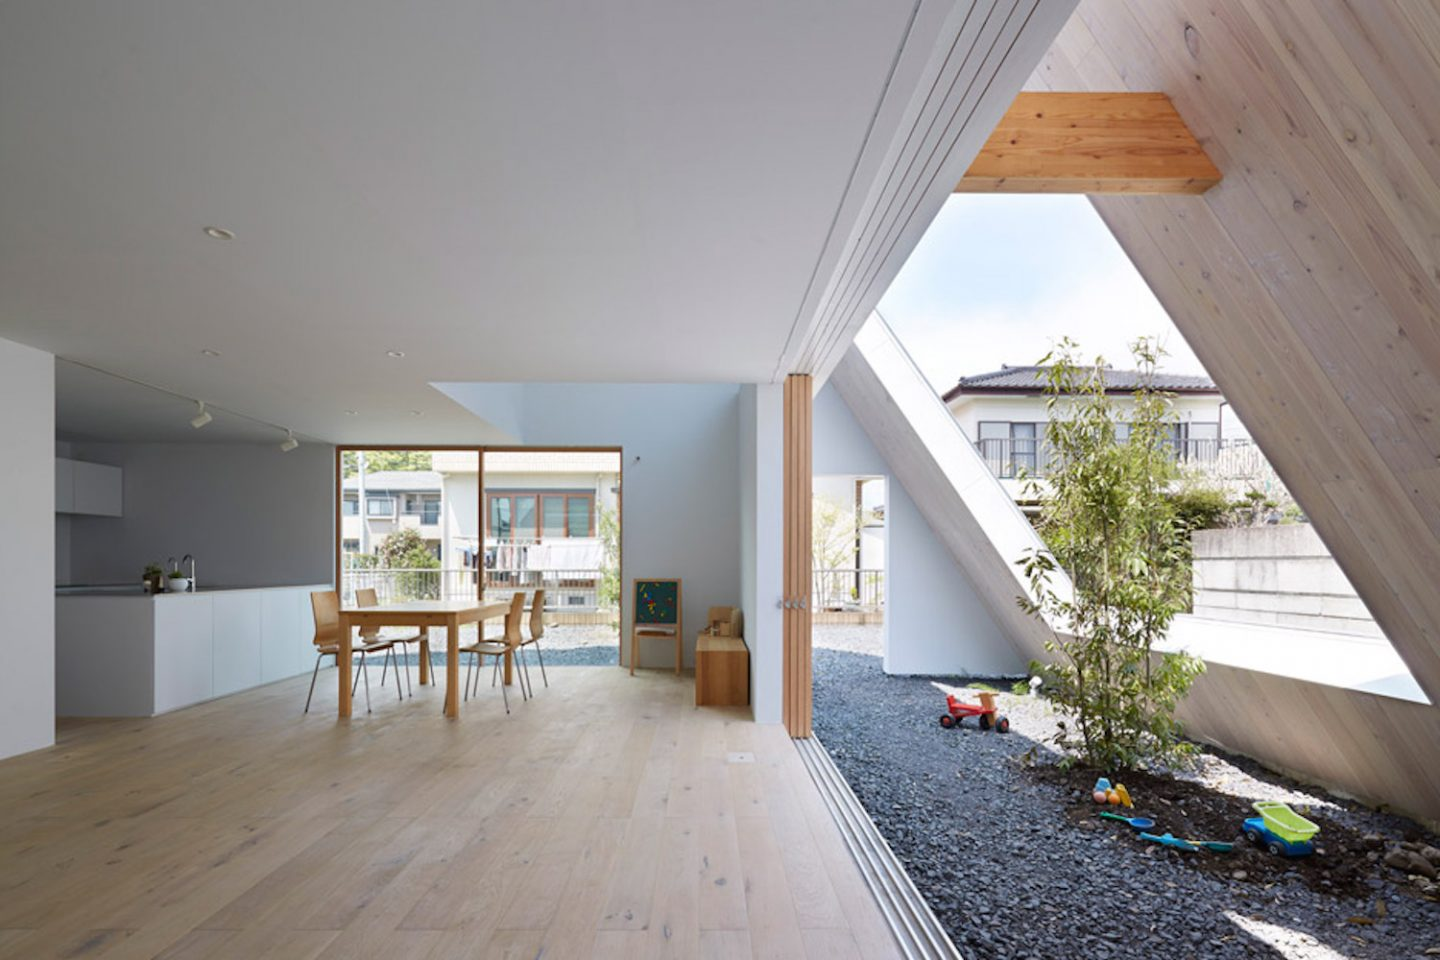 Architecture_House_Utsunomiya_Suppos_Design Office3